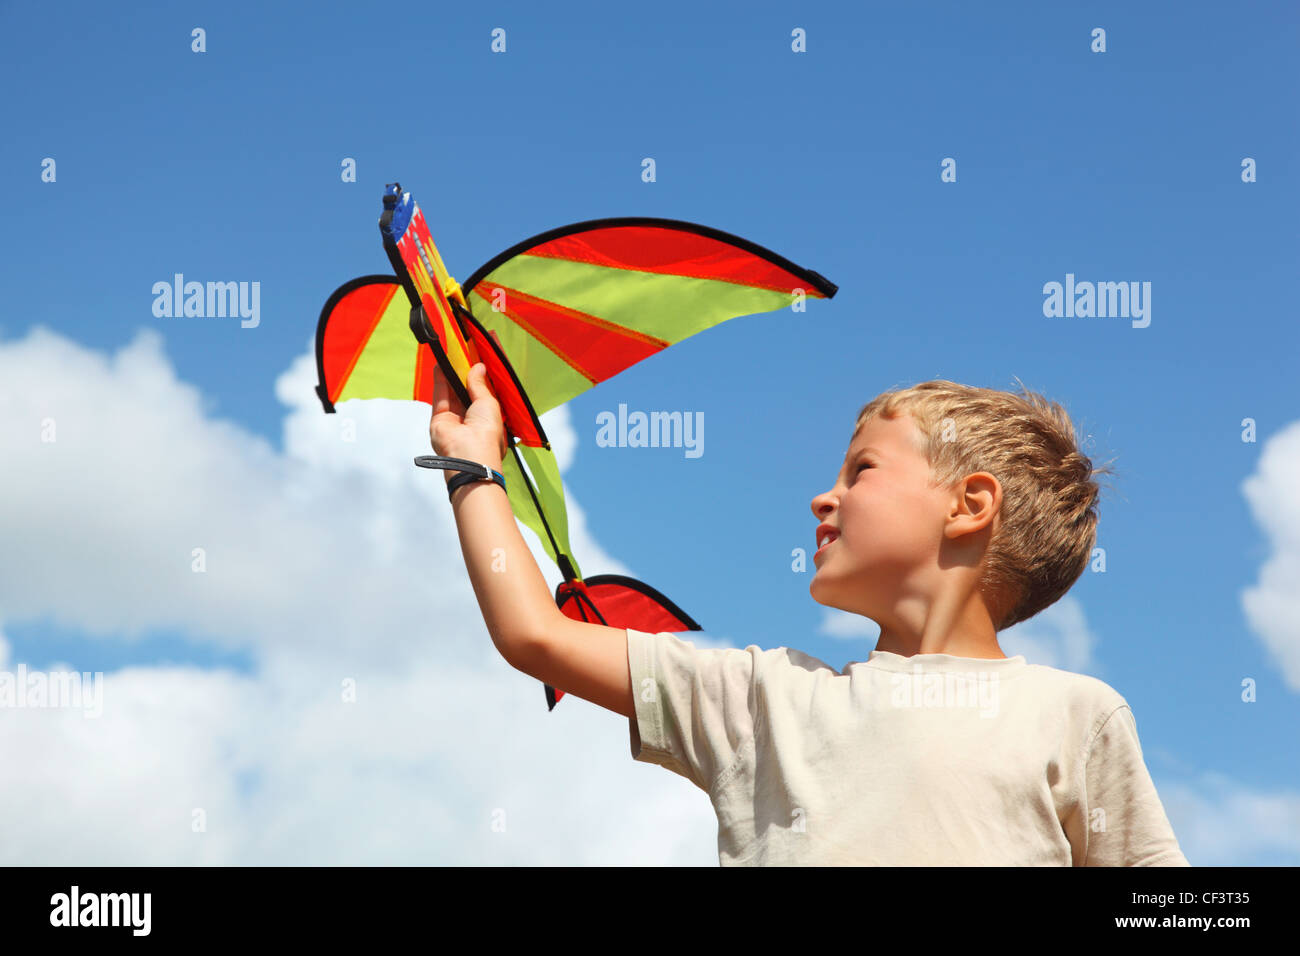 boy plays kite against sky - Stock Image